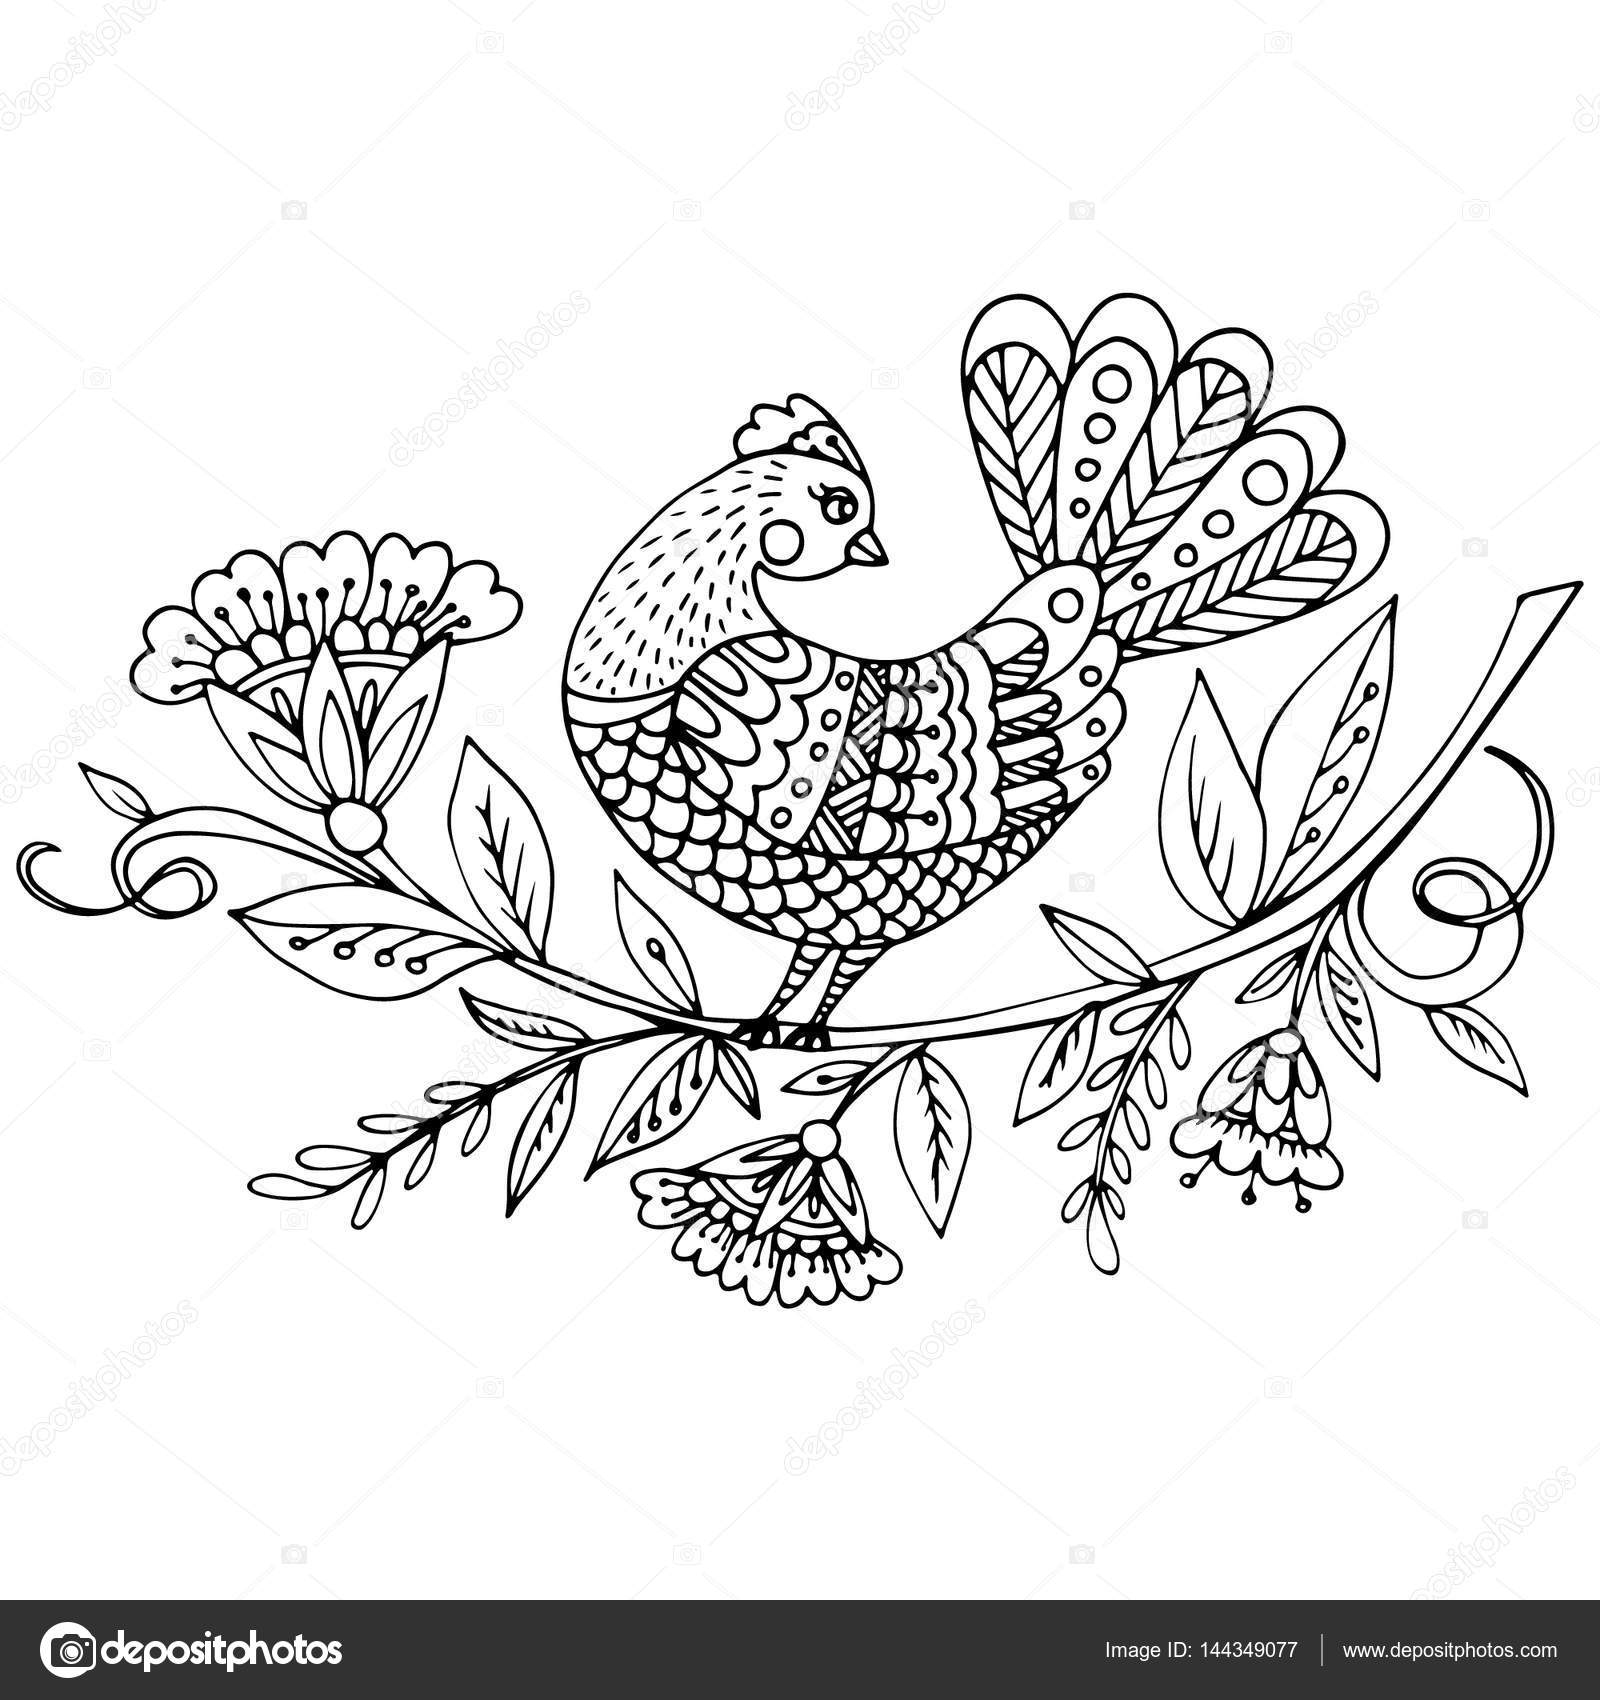 beautiful bird in magical garden for coloring book stock vector - Magical Garden Coloring Book